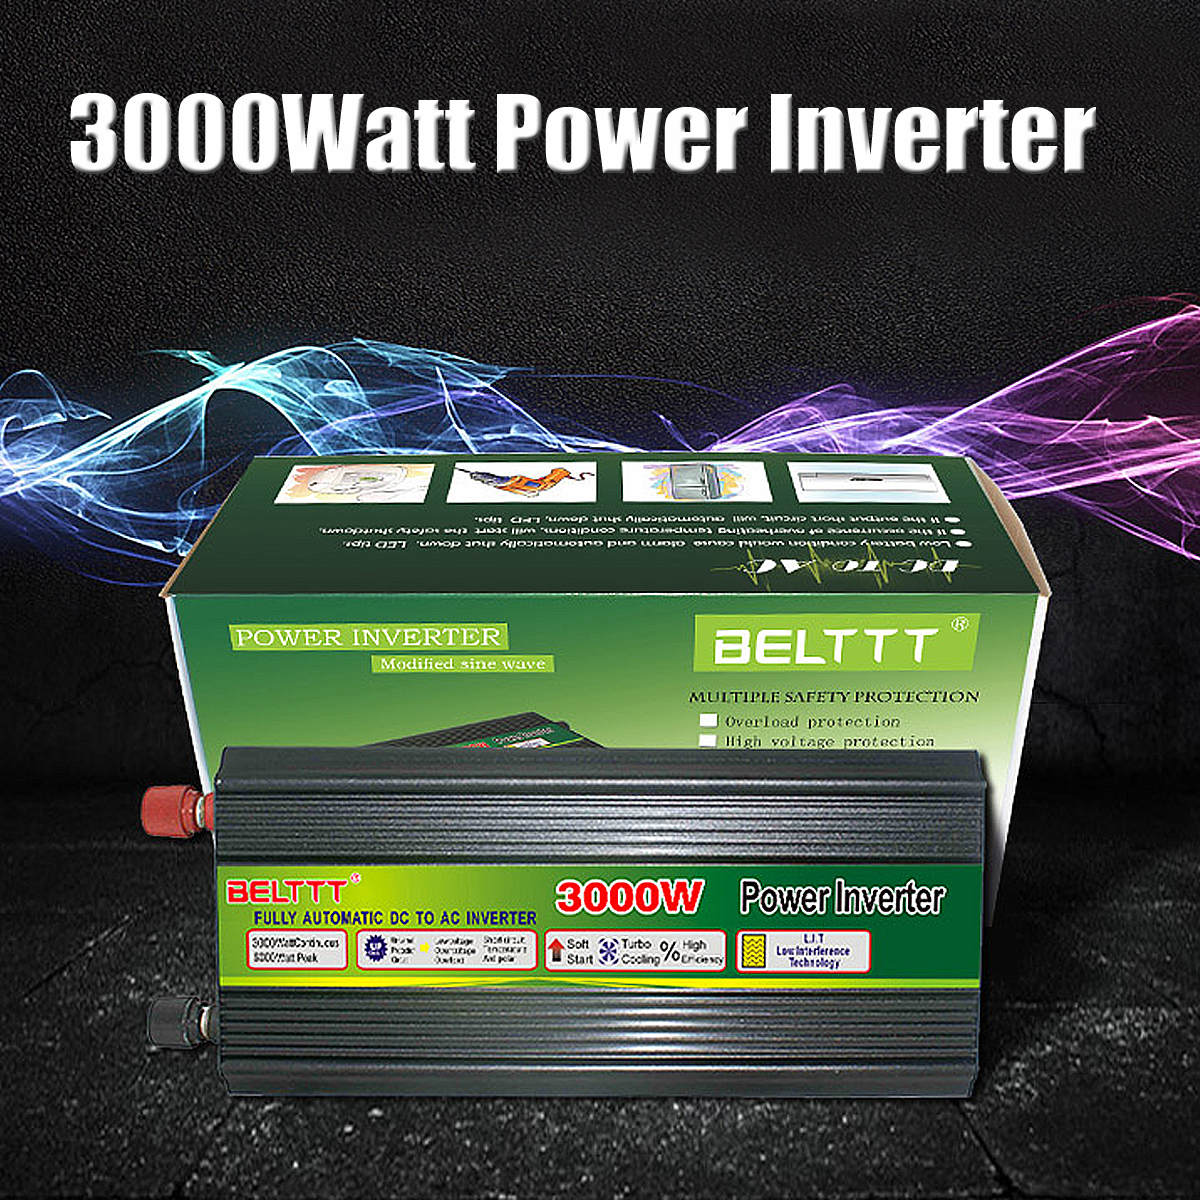 3000W 6000W Max DC12V/24V to AC220V Modified sine wave Power Inverter + Charger & UPS for Solar/Wind for Car Inverters dhl fedex free shipping home ups inverter 3000w peak 6000w dc12v to ac220v inverter 20amp charger